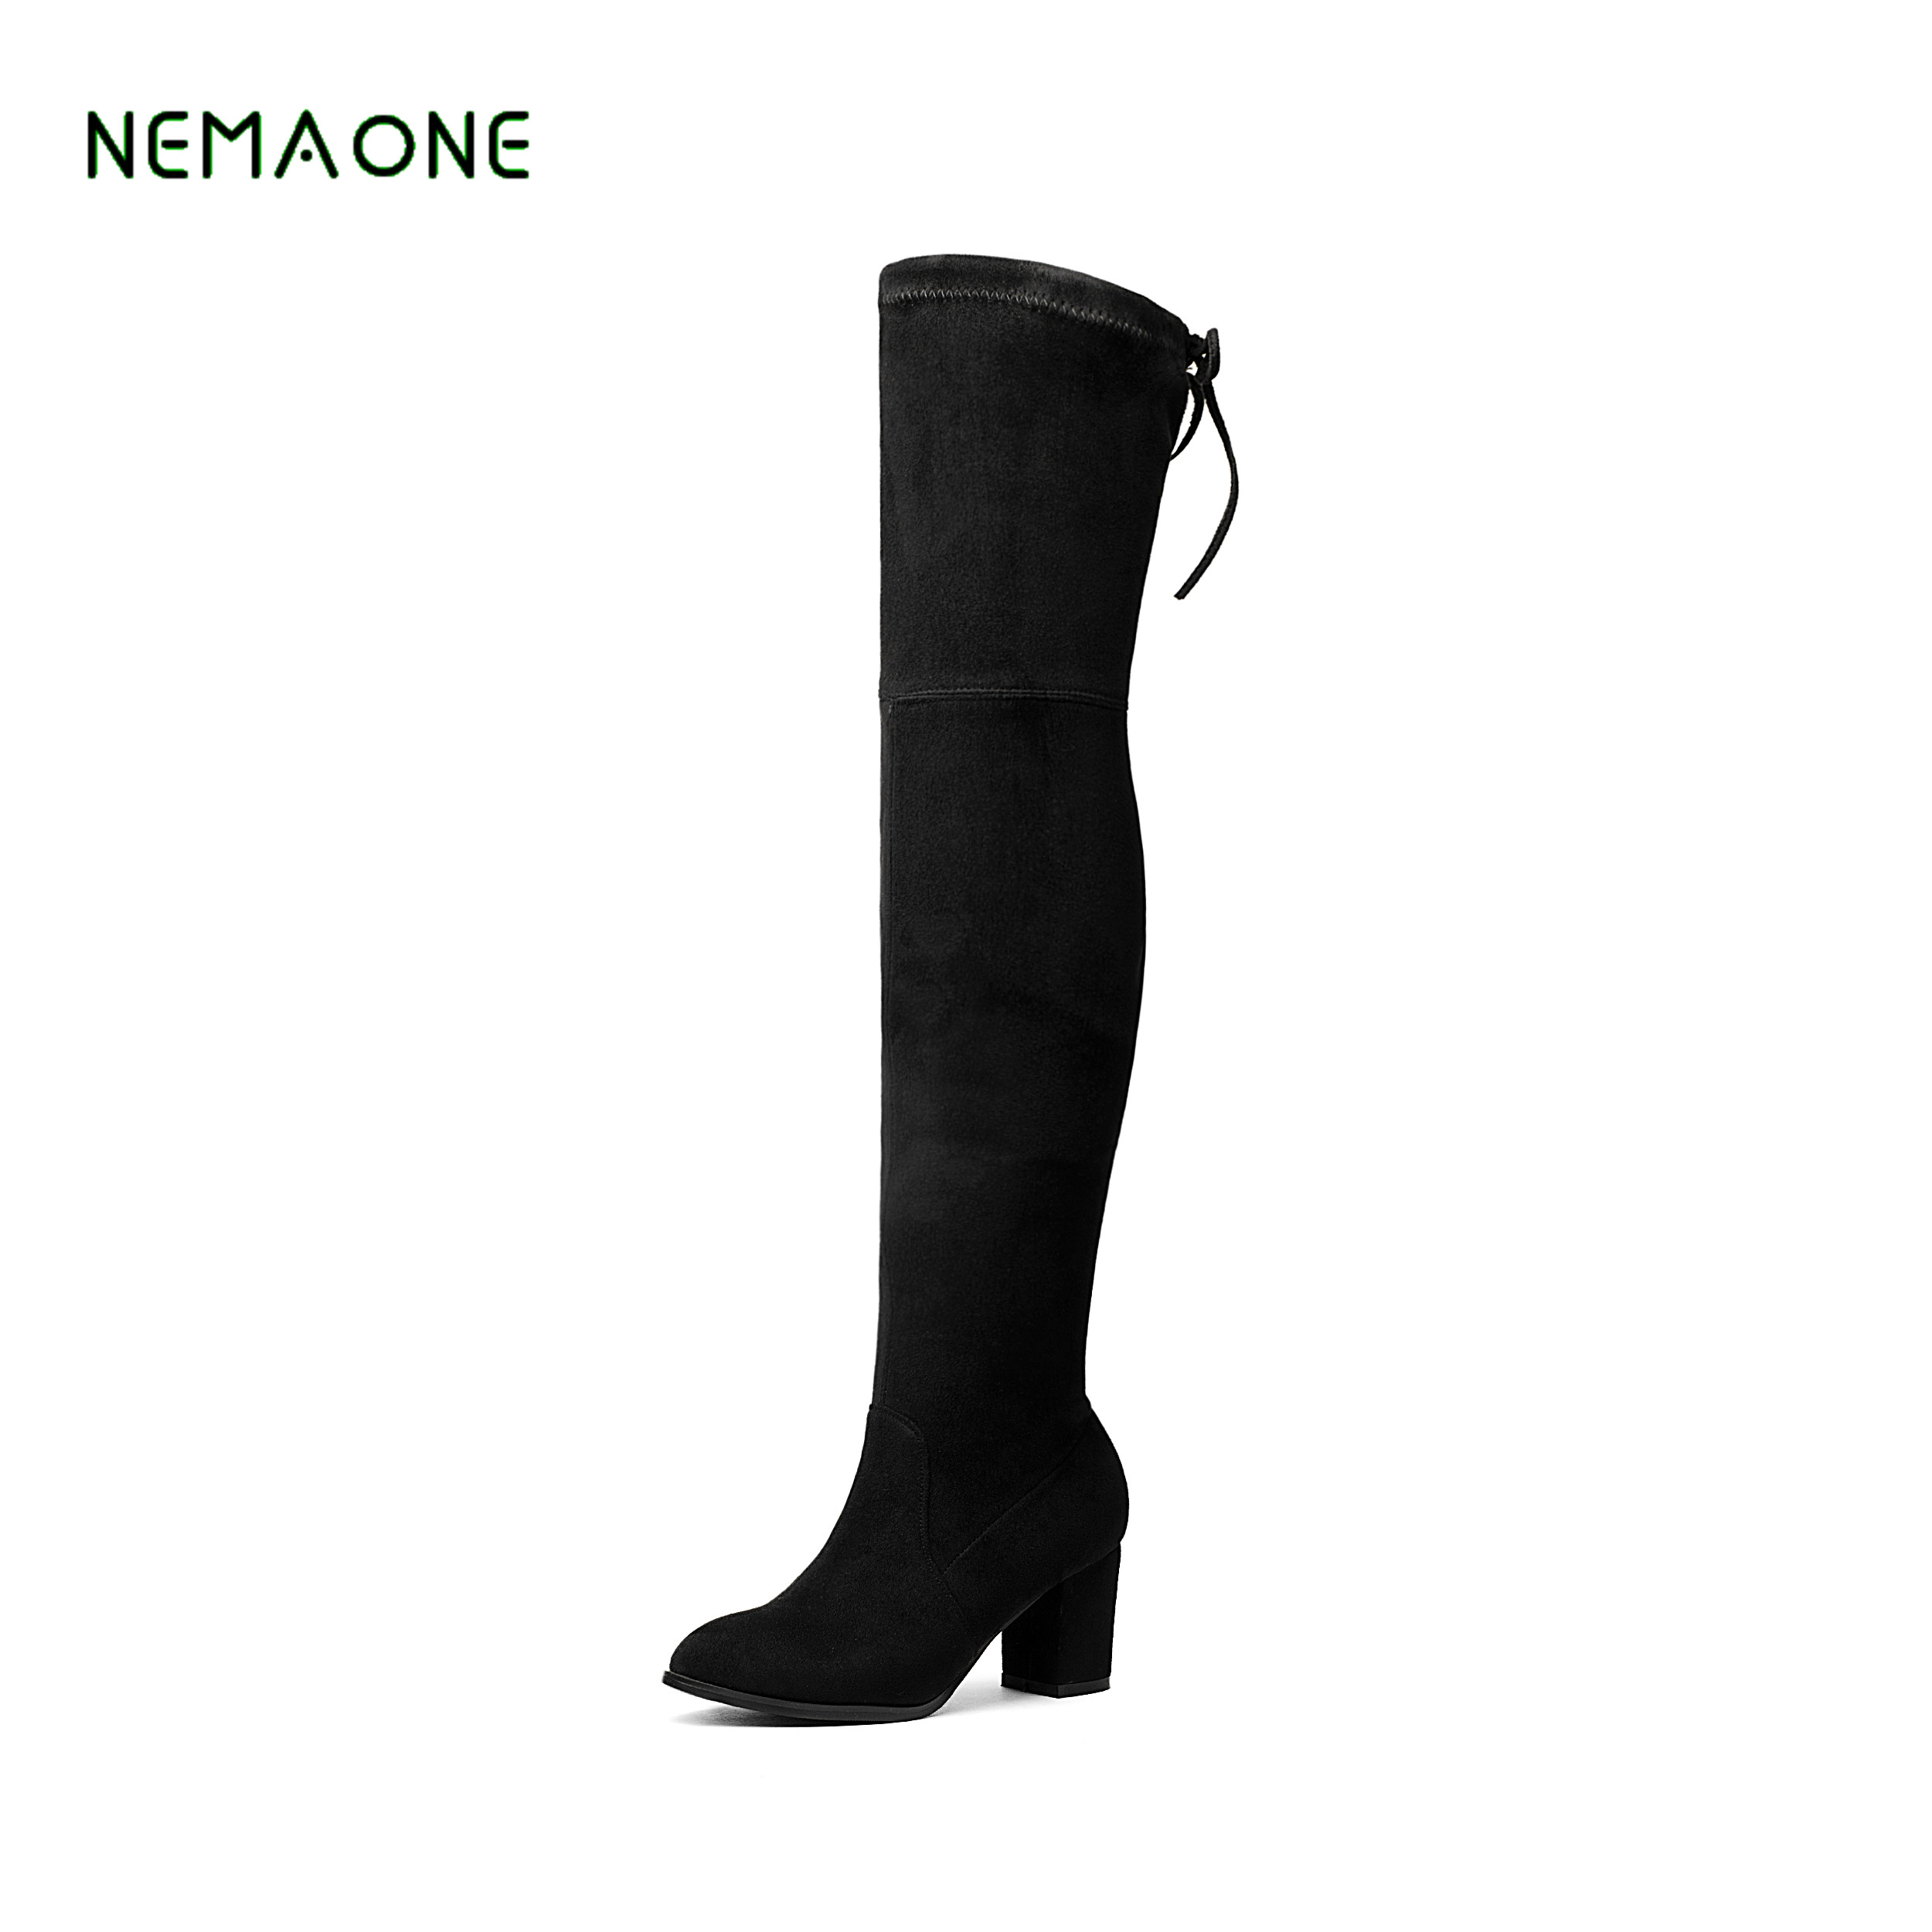 NEMAONE Faux Suede Slim Boots Sexy over the knee high women snow boots women's fashion winter thigh high boots shoes woman 2 x oil seal clutch side big for chainsaw hus 362 365 371 k 372 xp free shipping chain saw oil seal repl p n 503 26 03 01